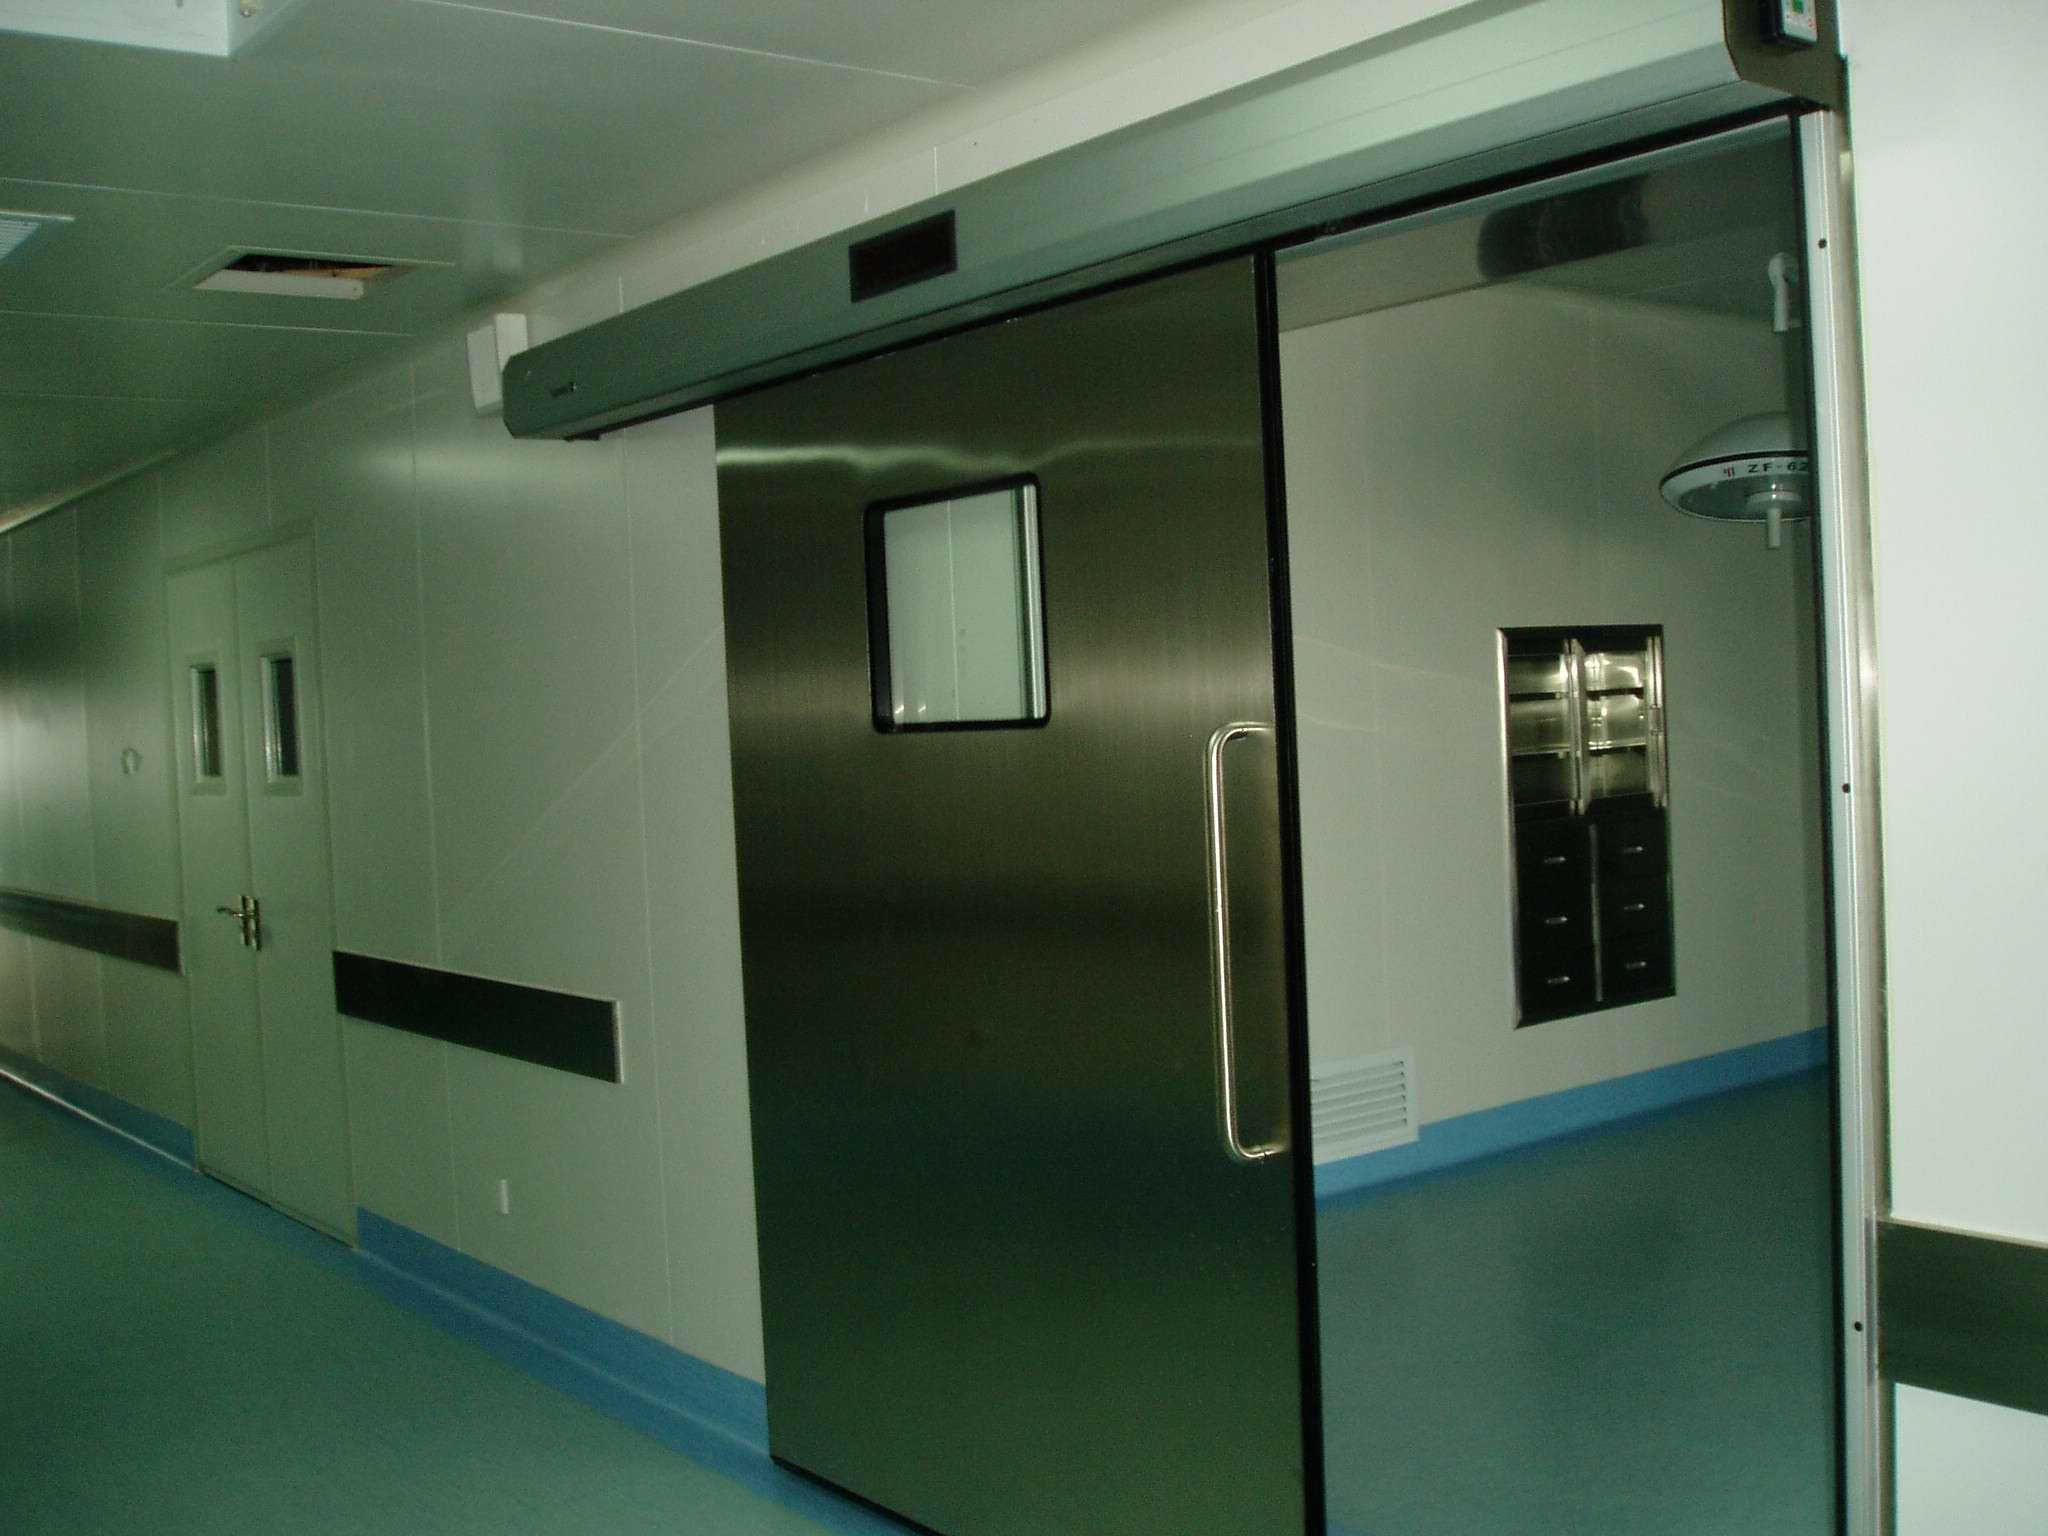 China 6 Hermetic Airtight Door with Shielding Door for Hospital - China Airtight Door Hermetic Door & China 6 Hermetic Airtight Door with Shielding Door for Hospital ...